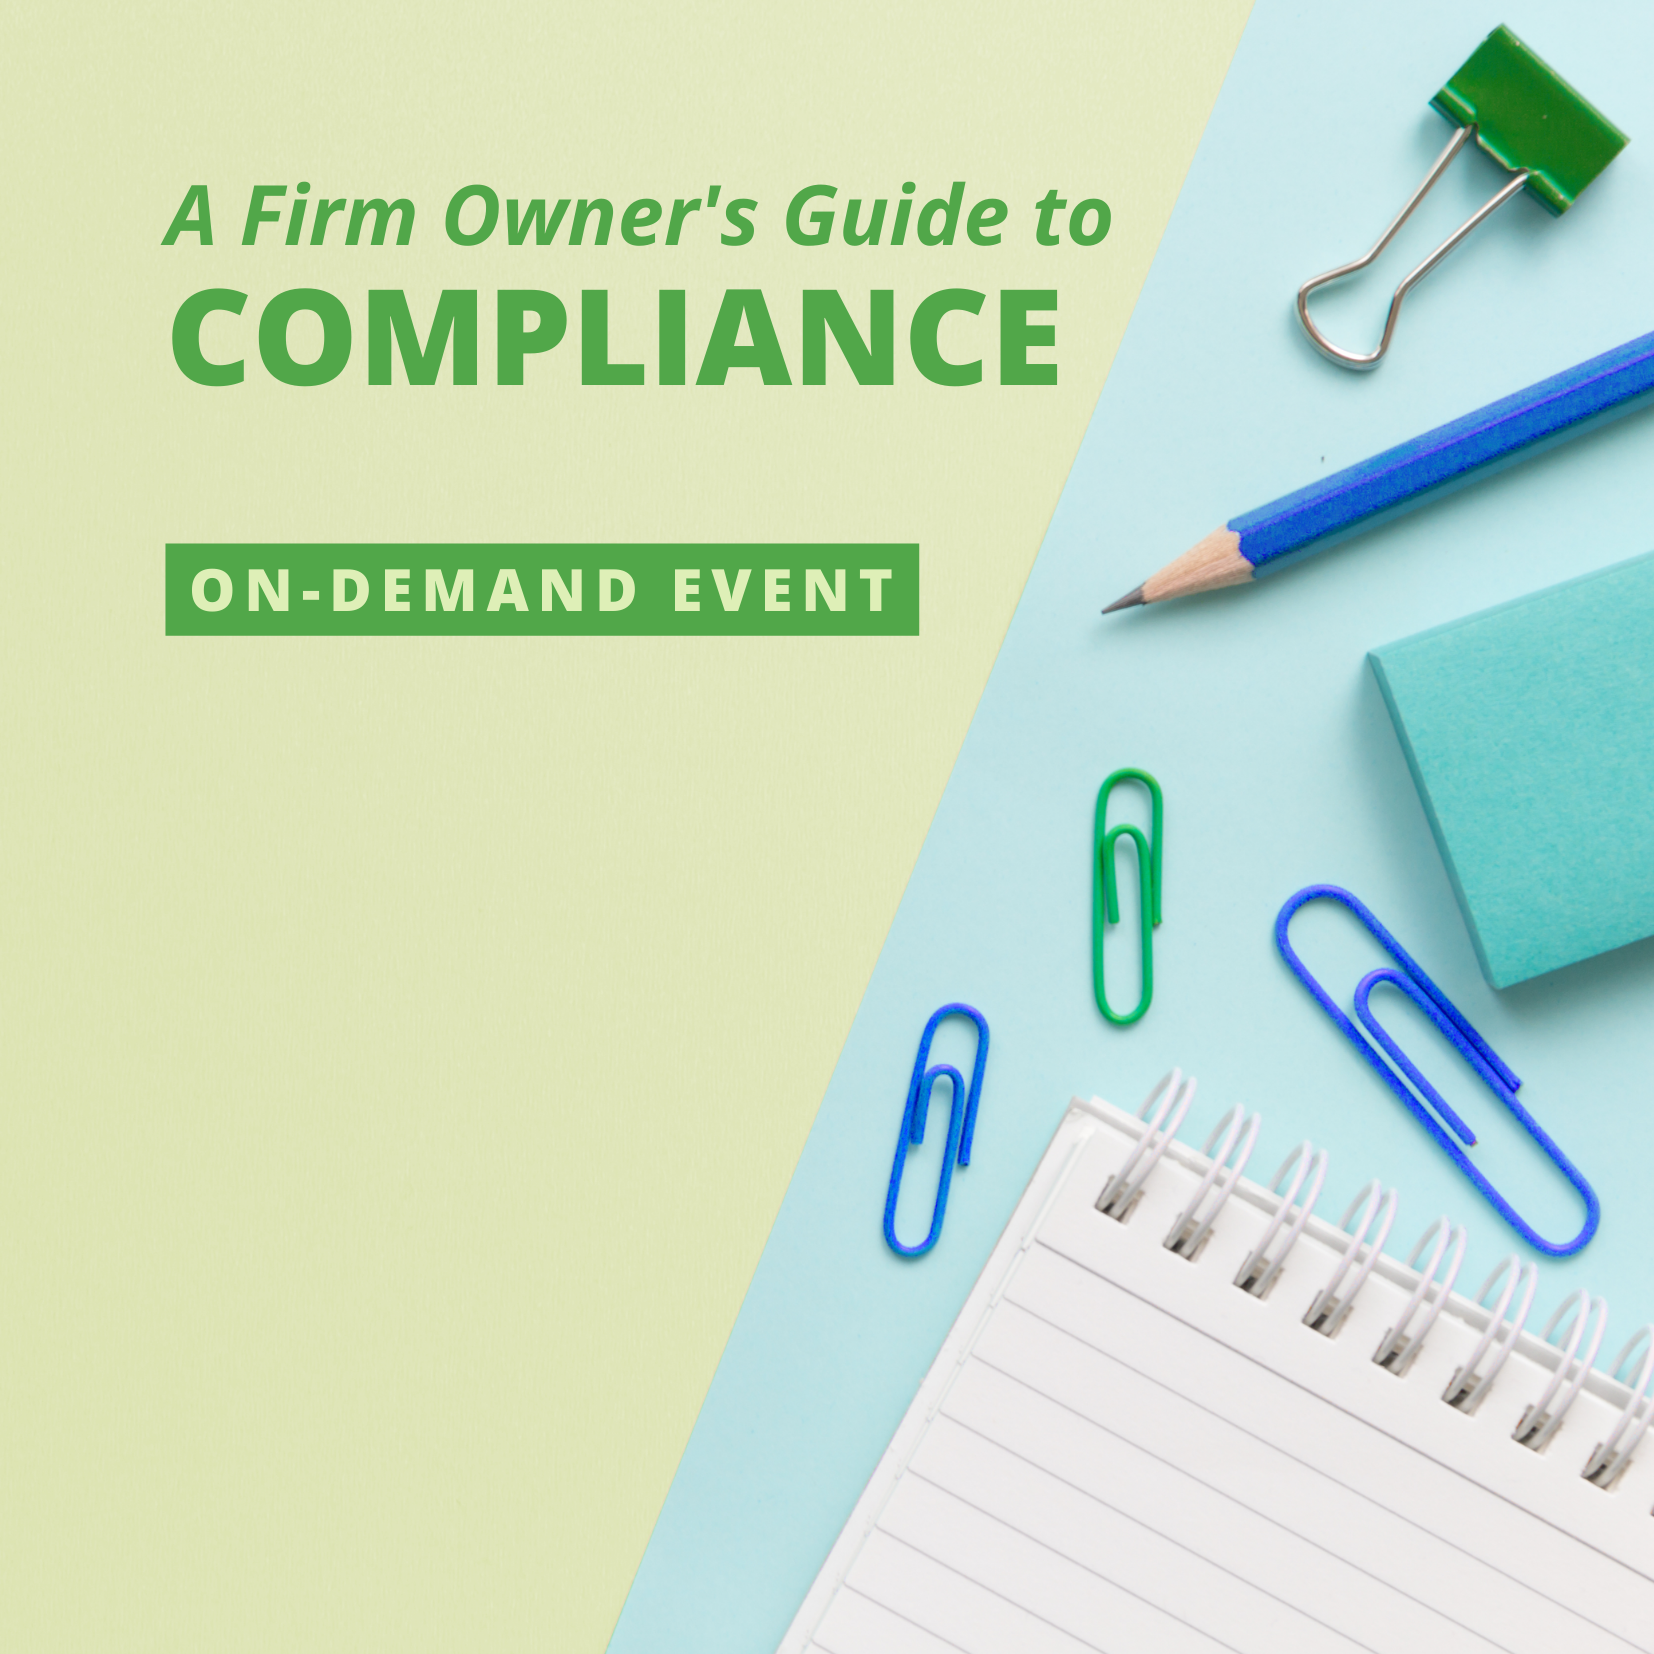 A Firm Owner's Guide to Compliance